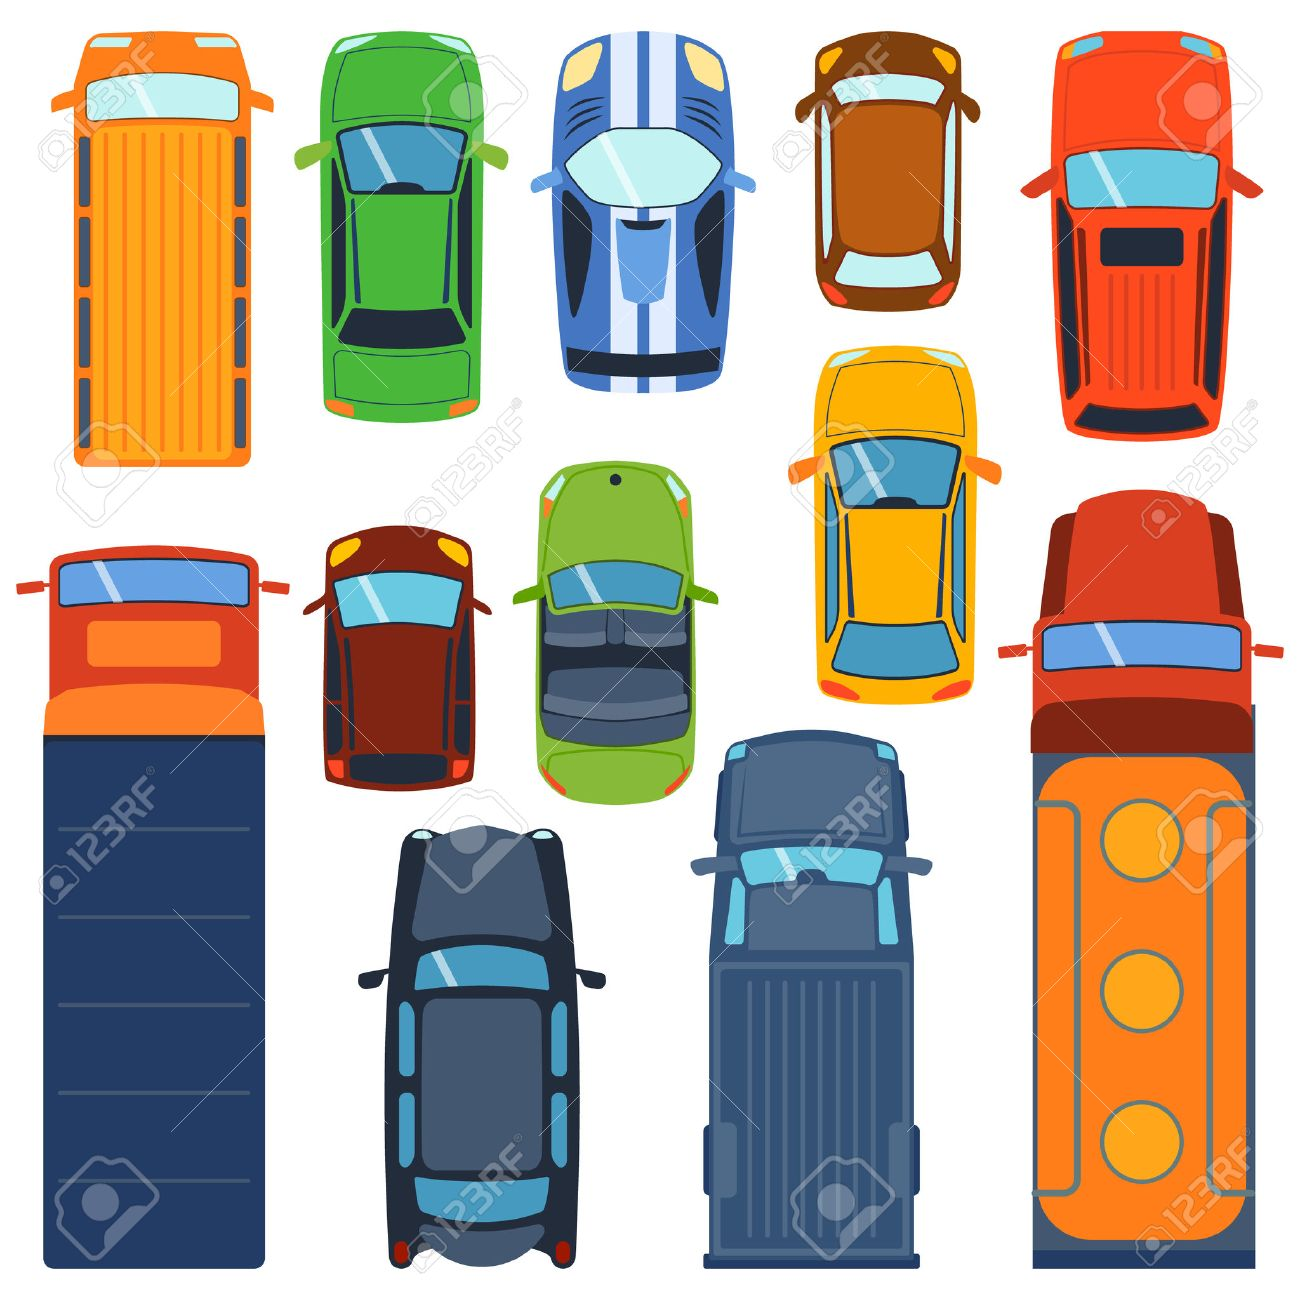 Vector cars icon set. From above car top view. Includes sedan commercial van truck wagon, cabrio, sport car, hatchback vehicles. Transportation vehicle collection design car top view motor van. - 61212068